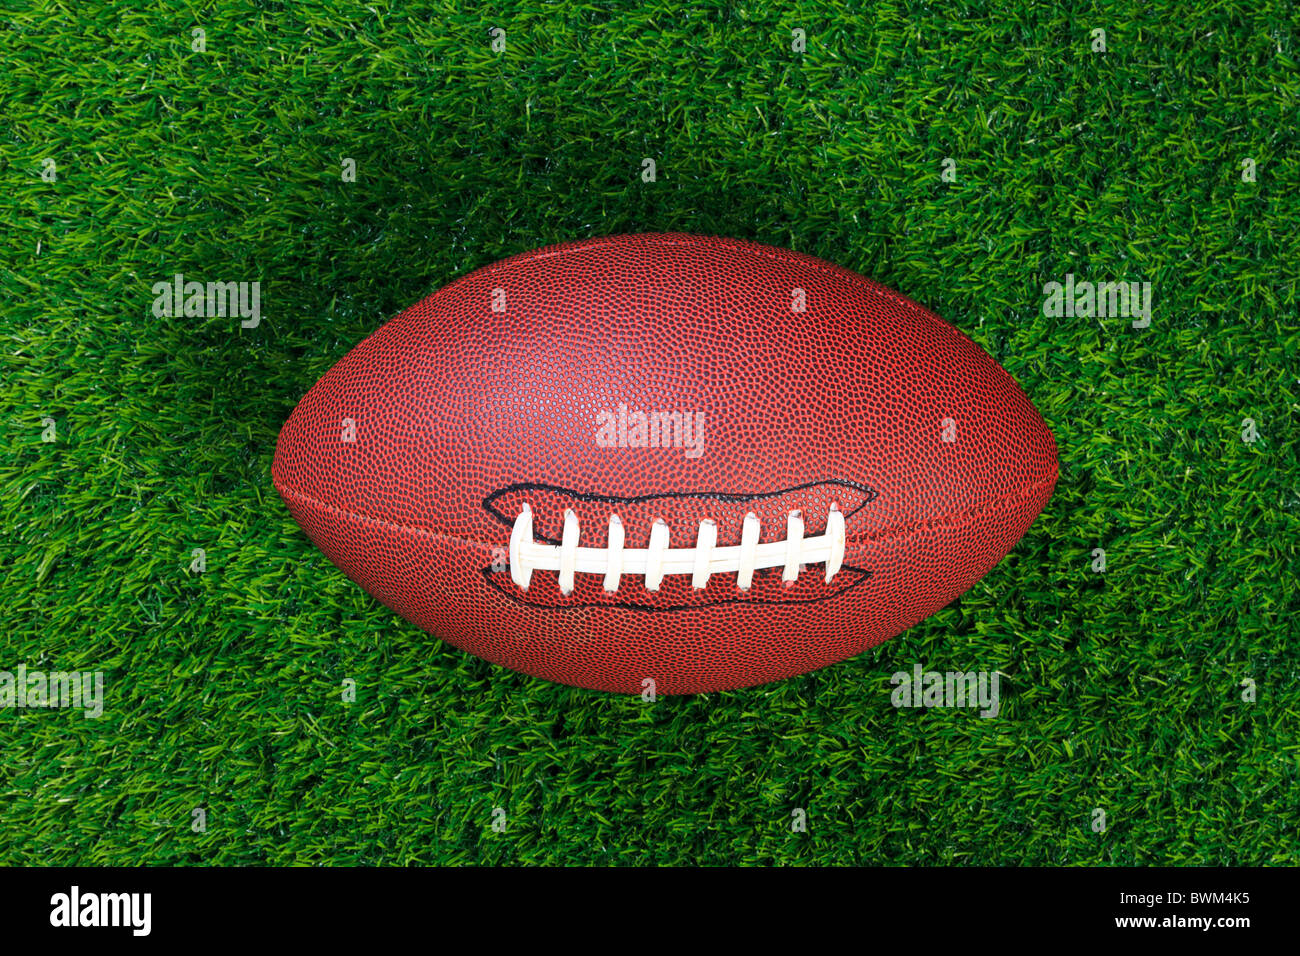 An American football on grass - Stock Image